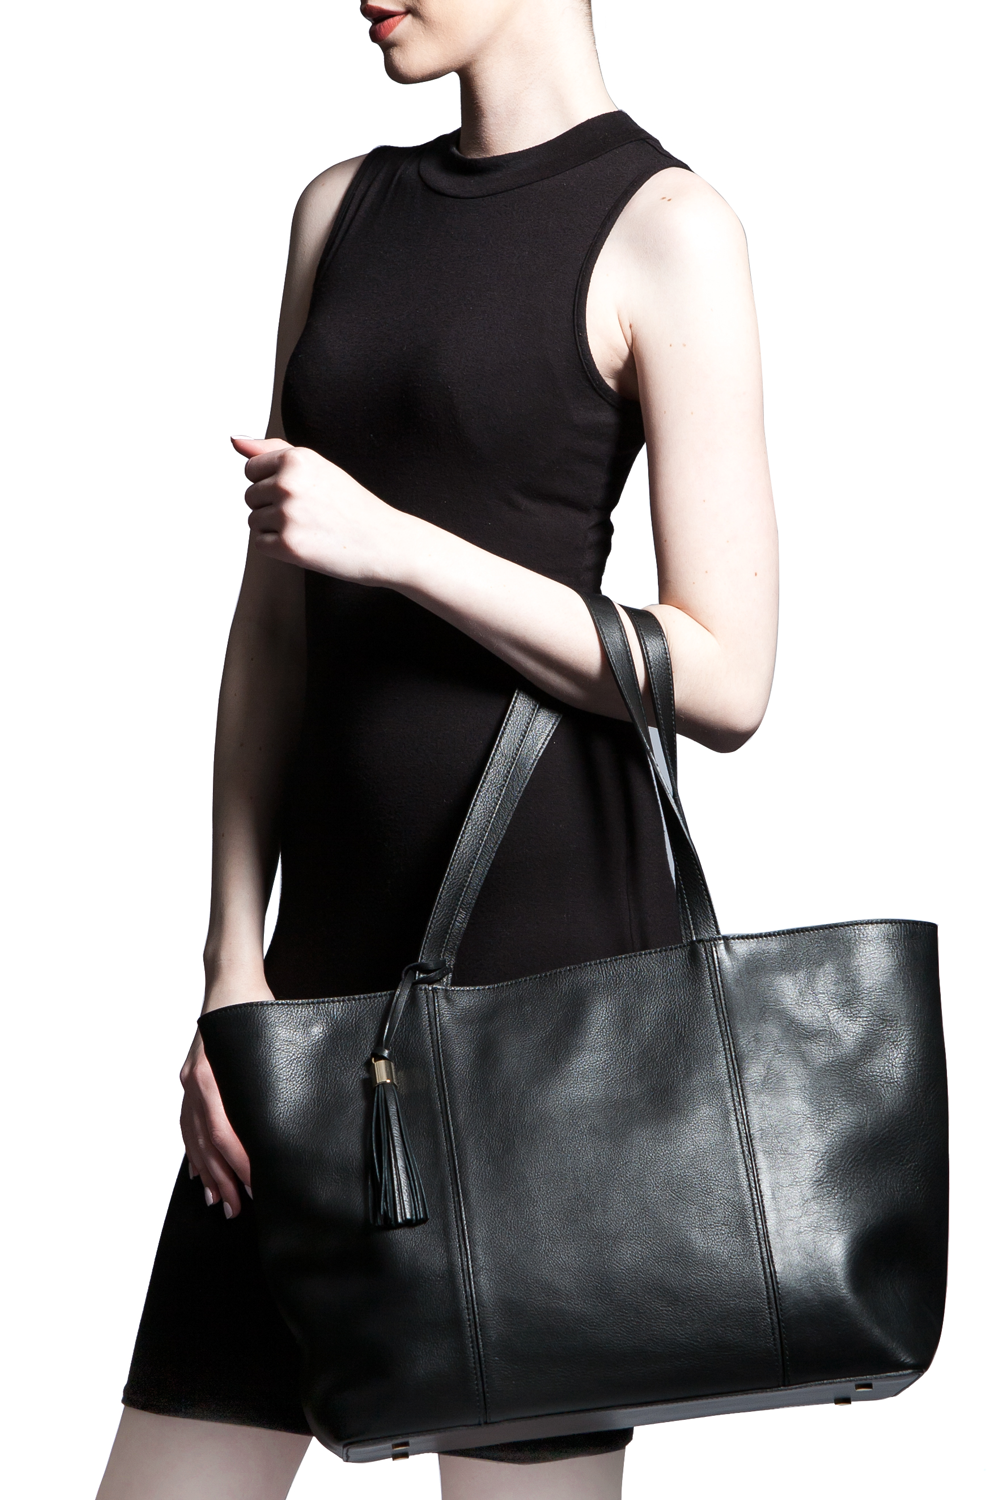 Mel Boteri | Kat Tote | Black Textured Leather | Model